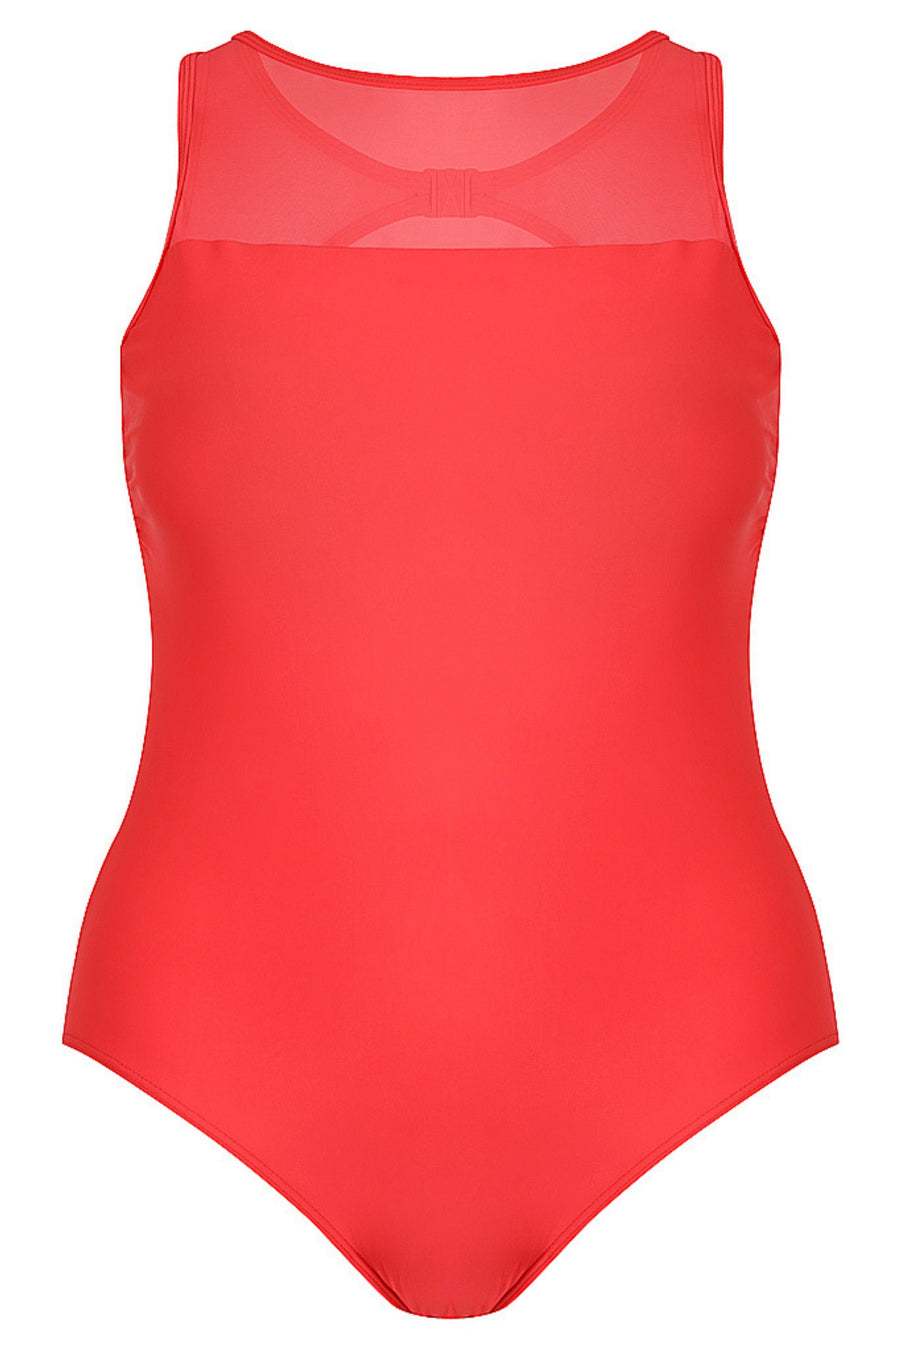 one piece bathing suits for women